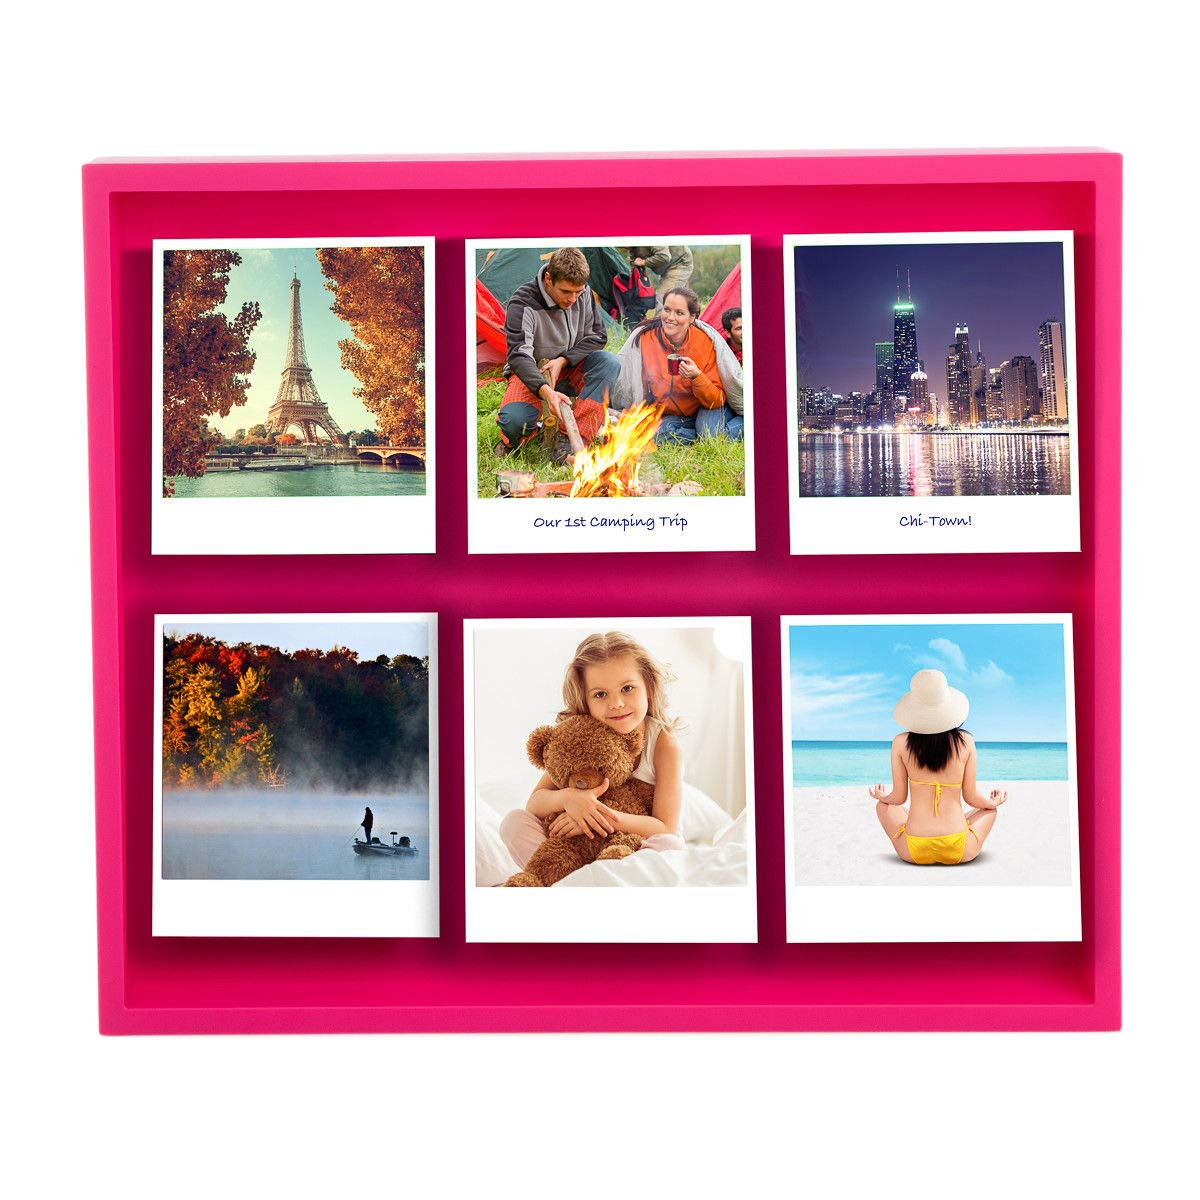 DN_DEA Wonderful Shadow Box Magnetic 12 x 10'' Polaroid Photo Frame Holds 6 Pictures Photographs Color Pink